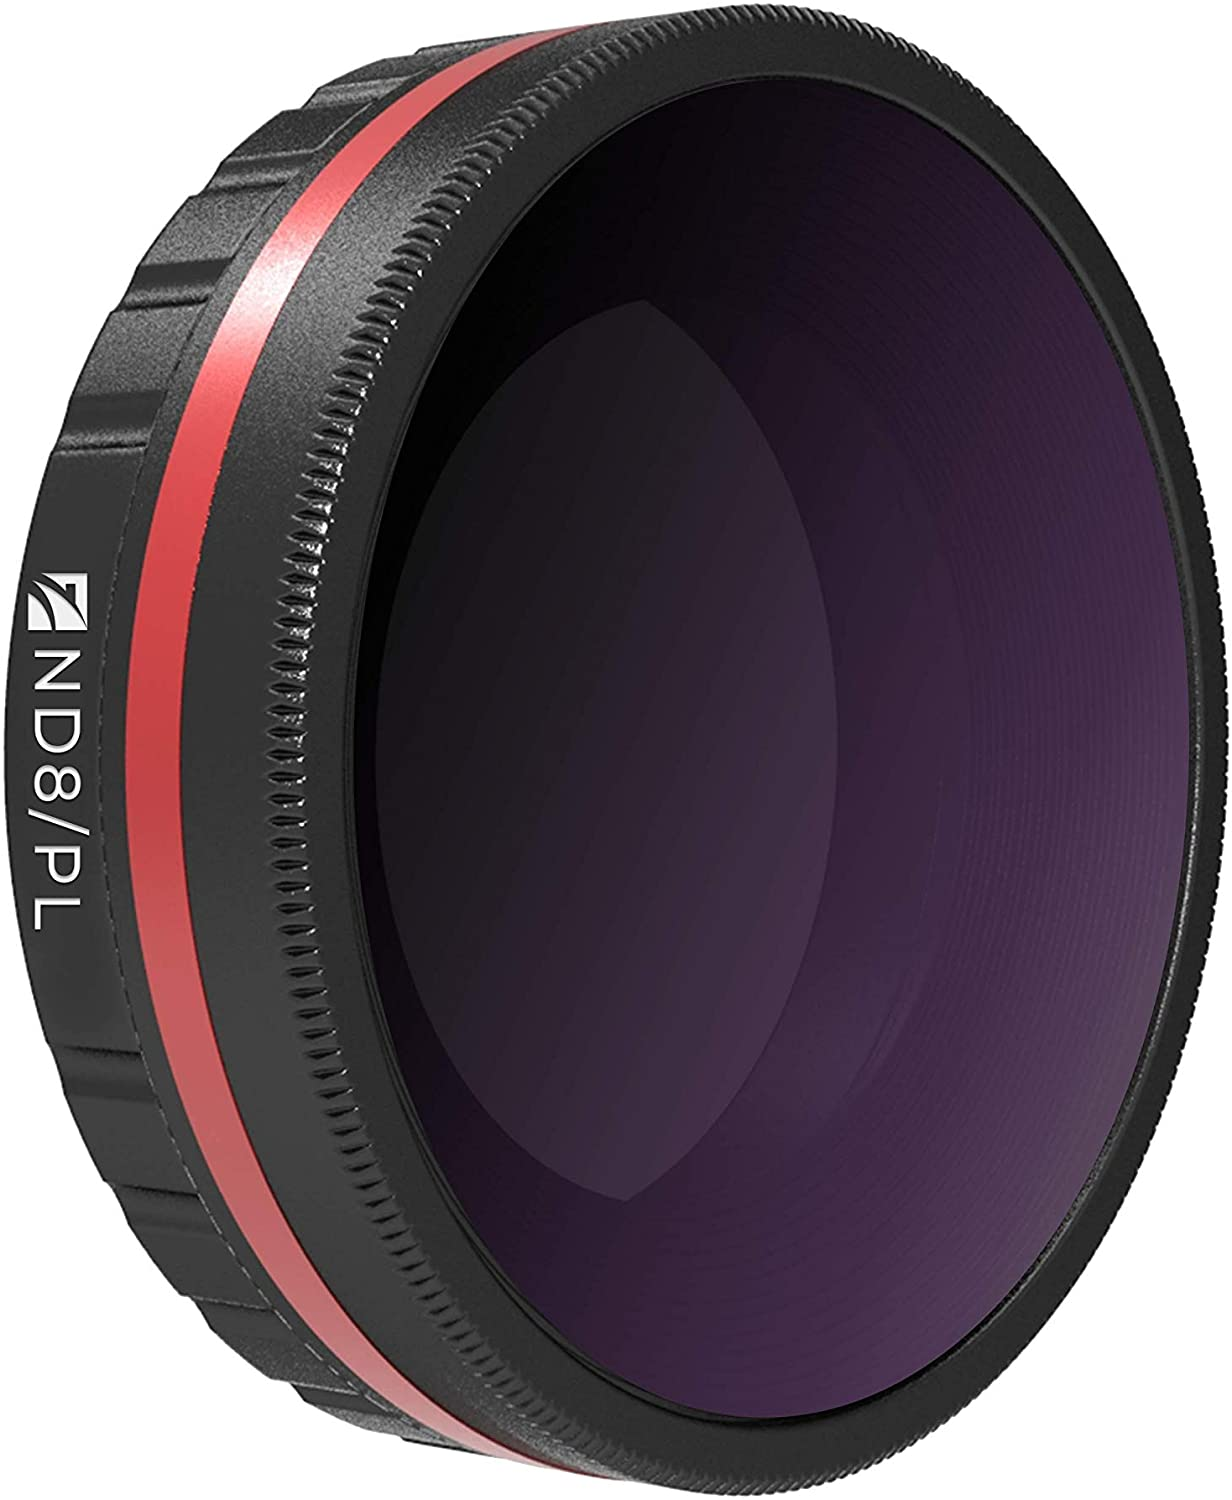 Freewell ND8/PL Hybrid Camera Lens Filter Compatible with DJI Osmo Action Camera